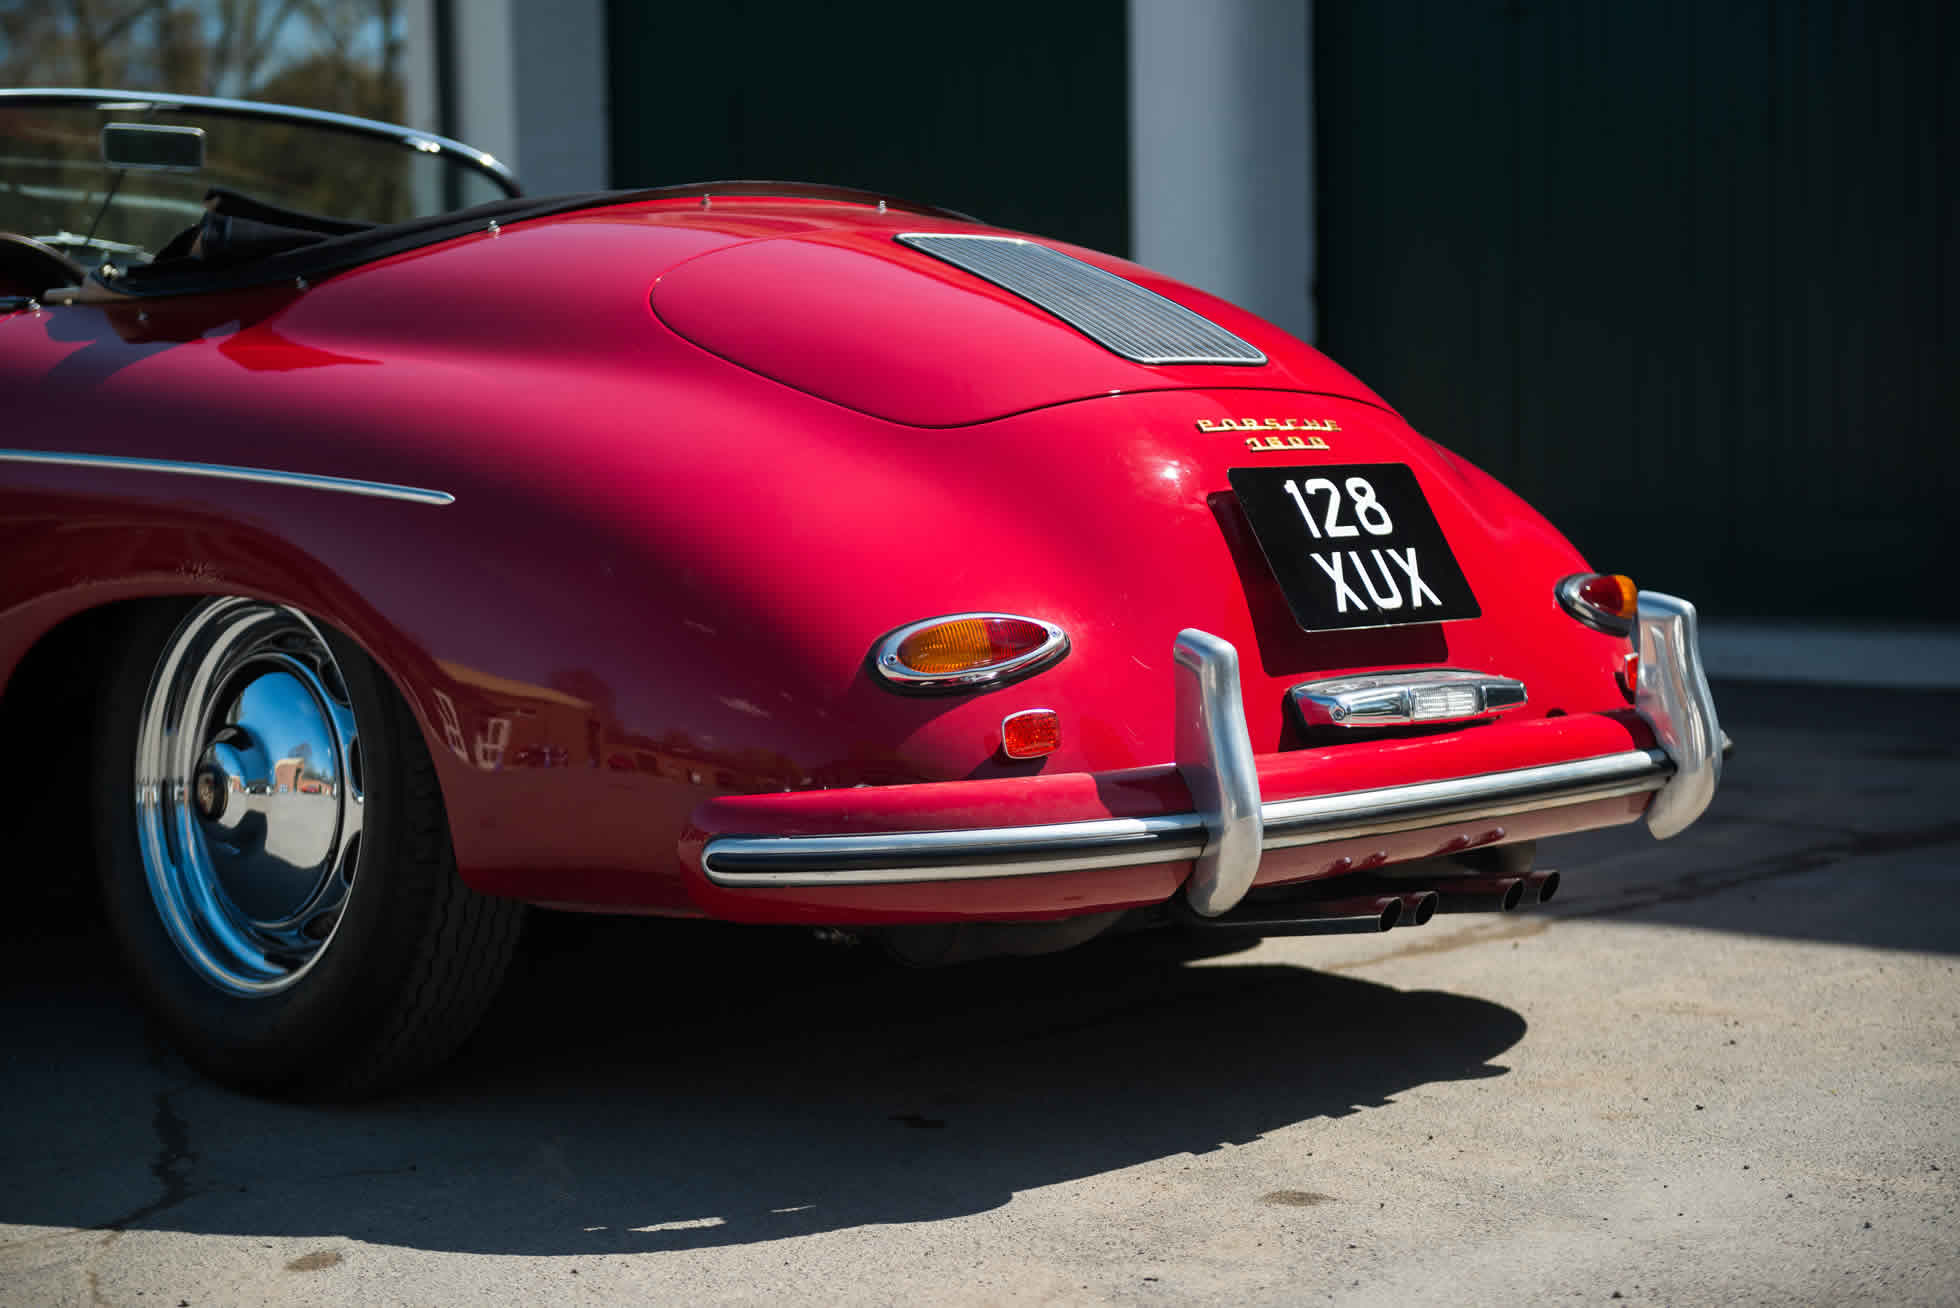 For Sale 1958 Porsche 356 Speedster rear view